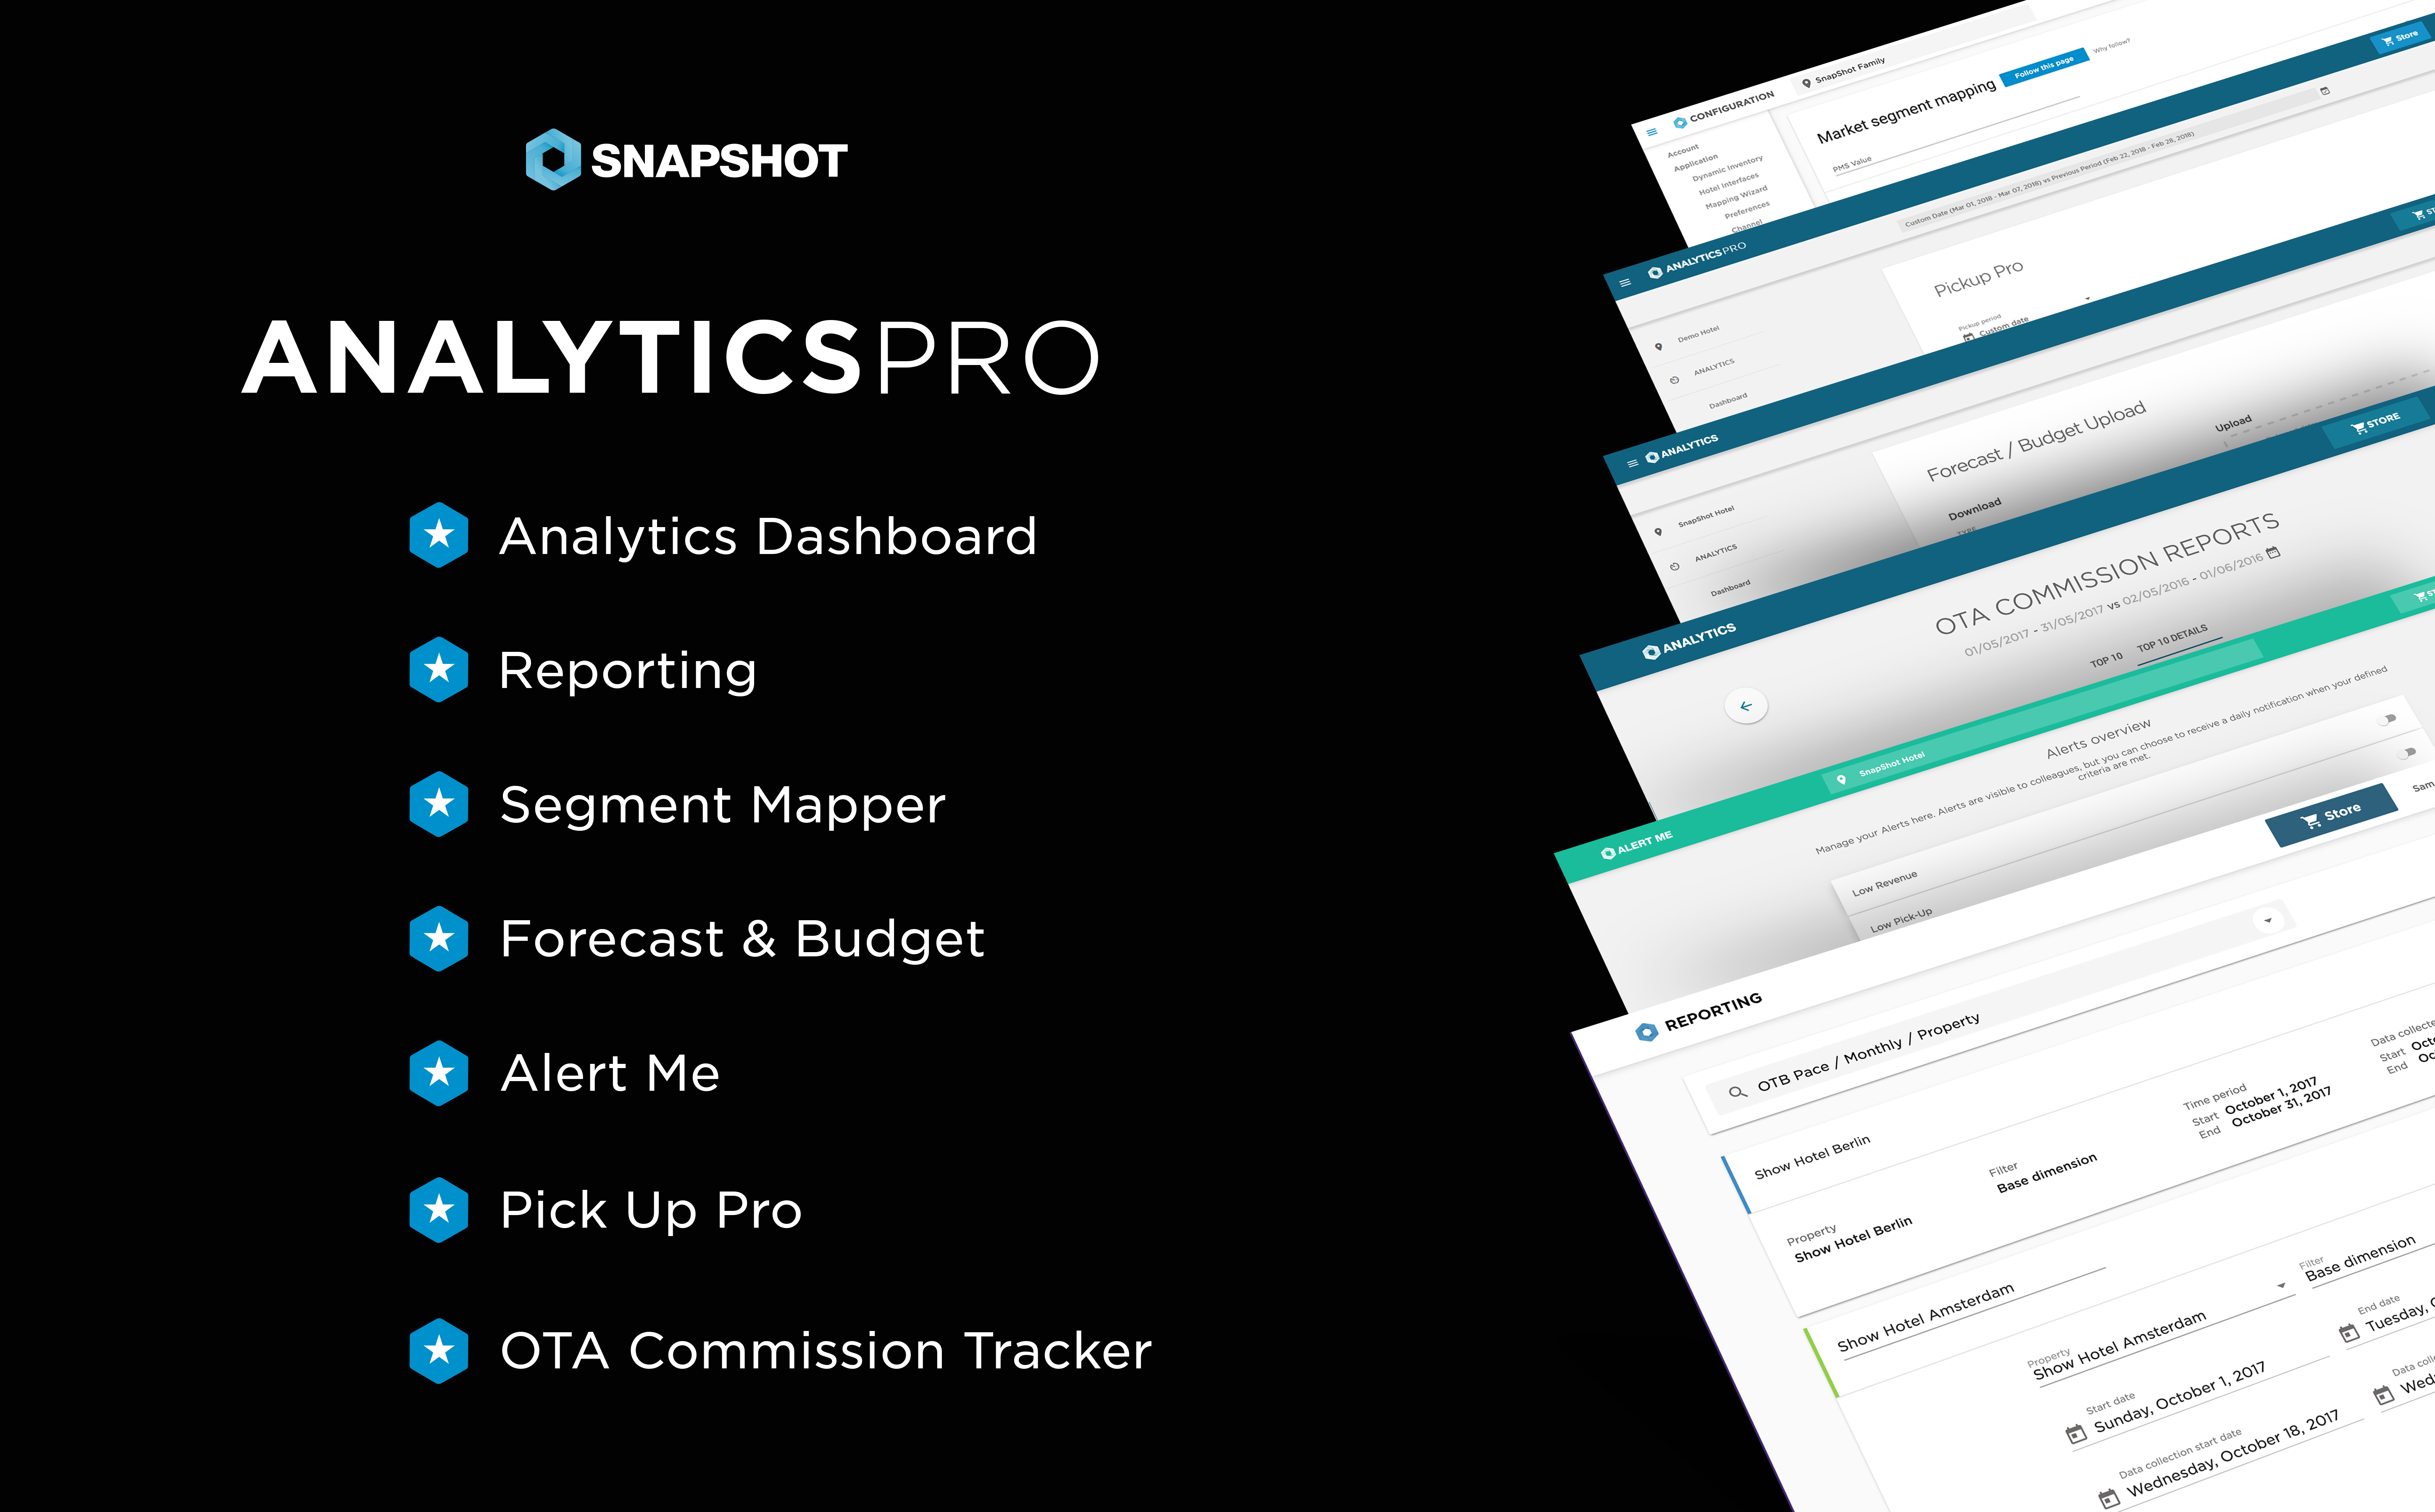 SnapShot AnalyticsPro Overview